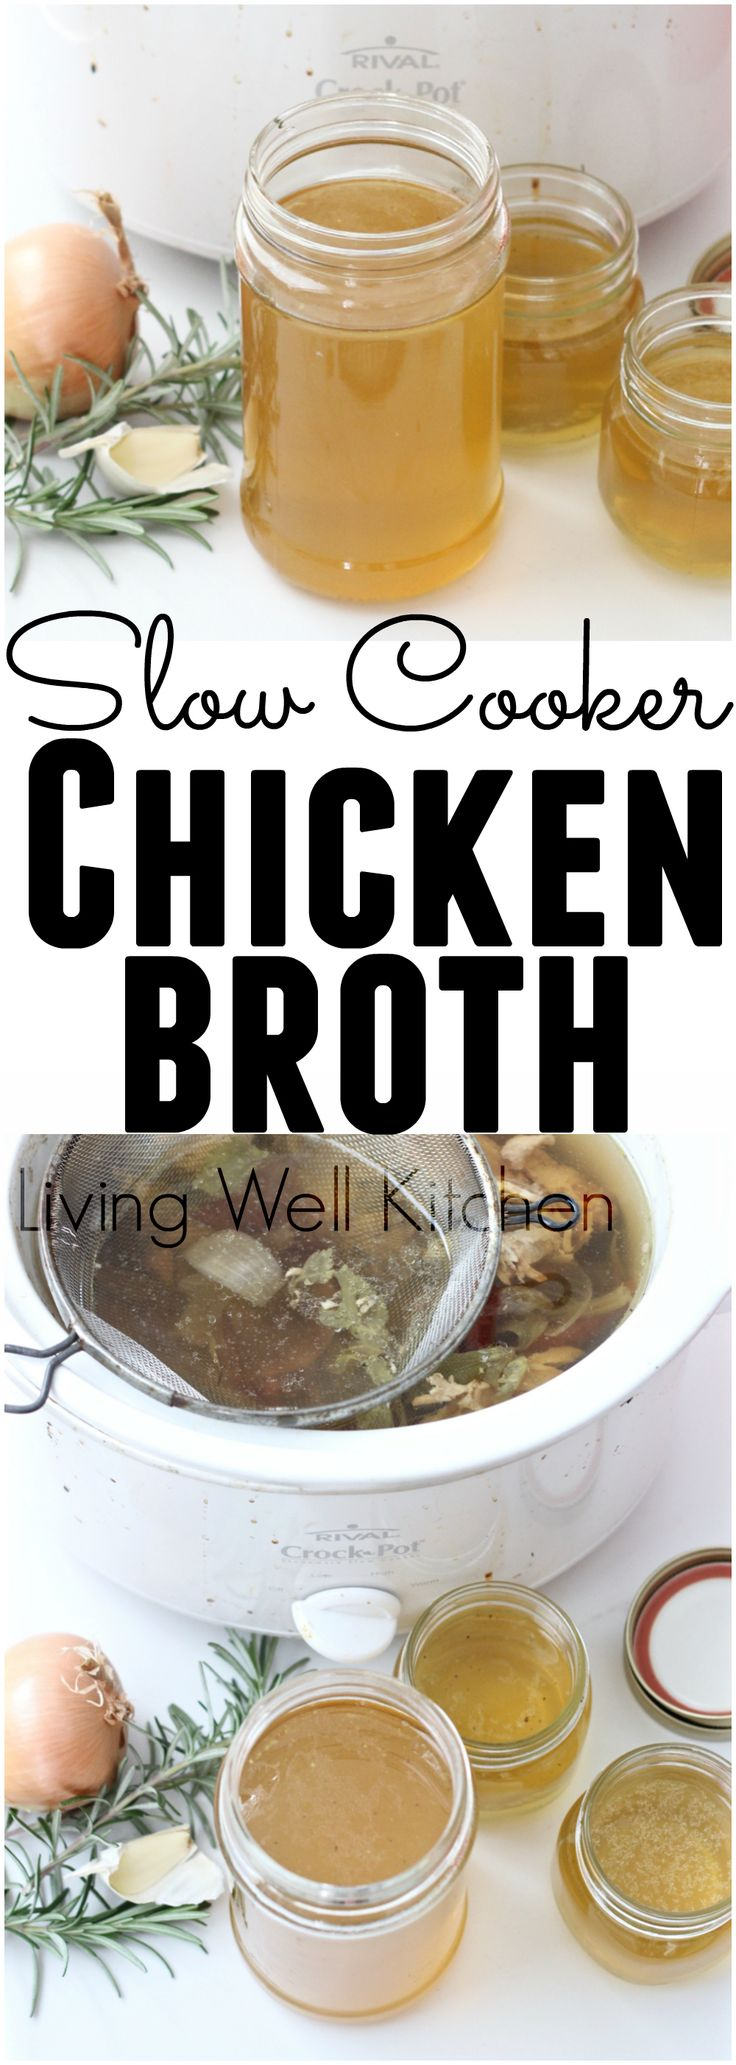 Making homemade chicken broth is easy when you use your slow cooker. Slow Cooker Chicken Broth recipe from Living Well Kitchen @memeinge. #slowcooker #crockpot #CrockPotRecipes #bonebroth #ChickenBroth #easyrecipe